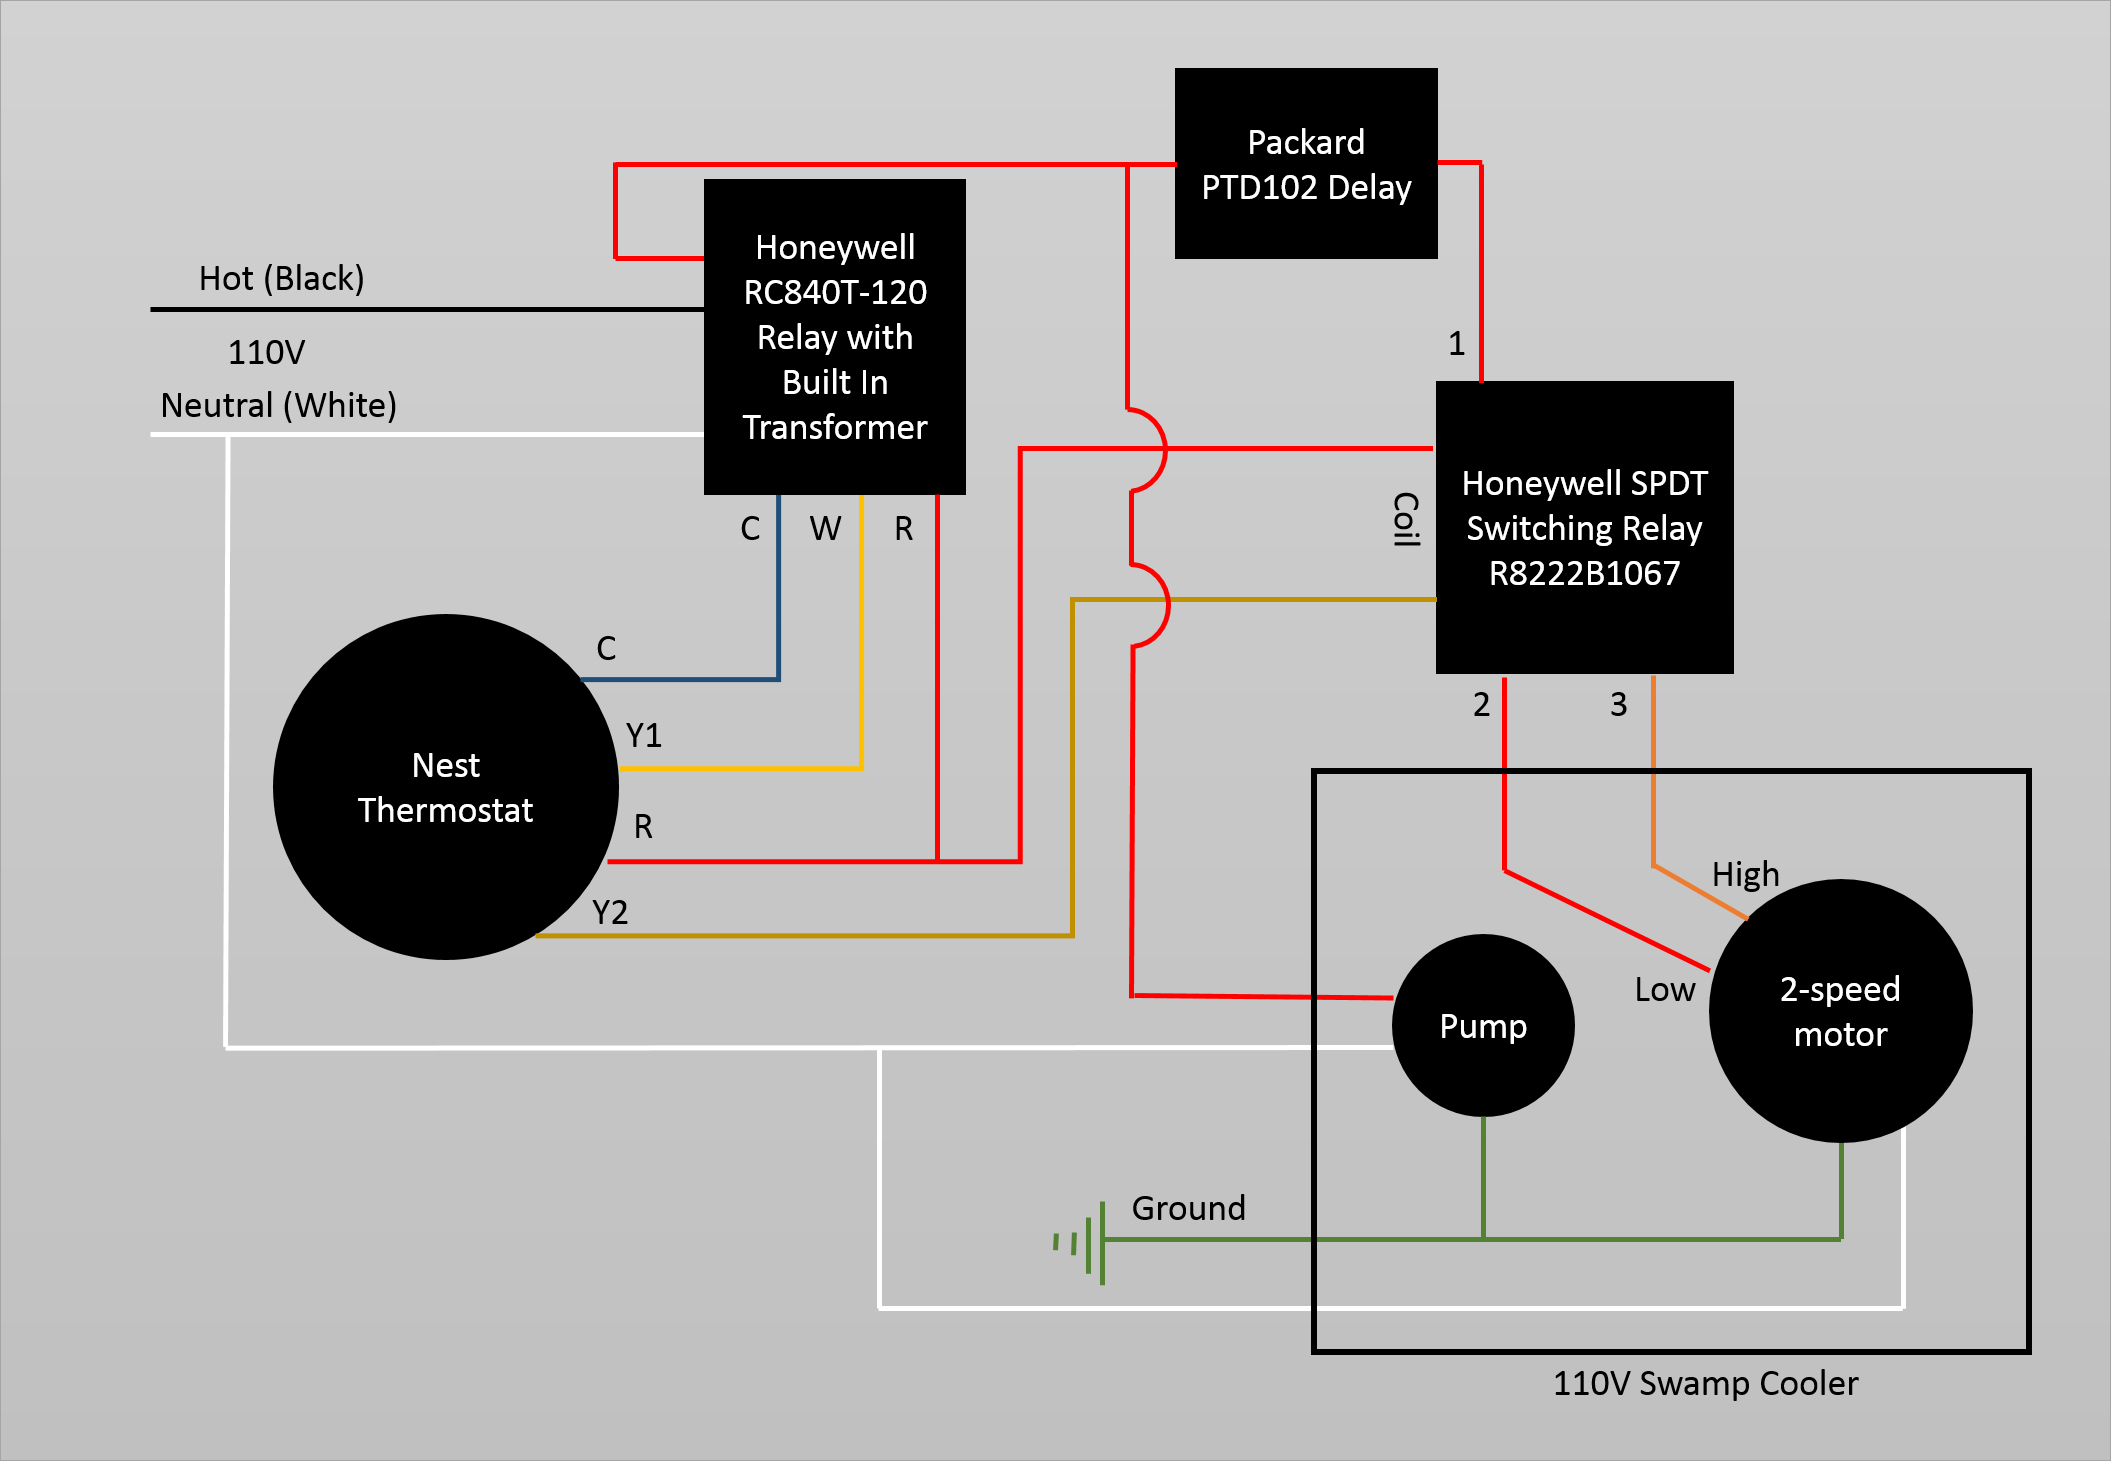 Wiring - Controlling 110V Swamp Cooler Using Nest Thermostat - Home - Nest Room Stat Wiring Diagram